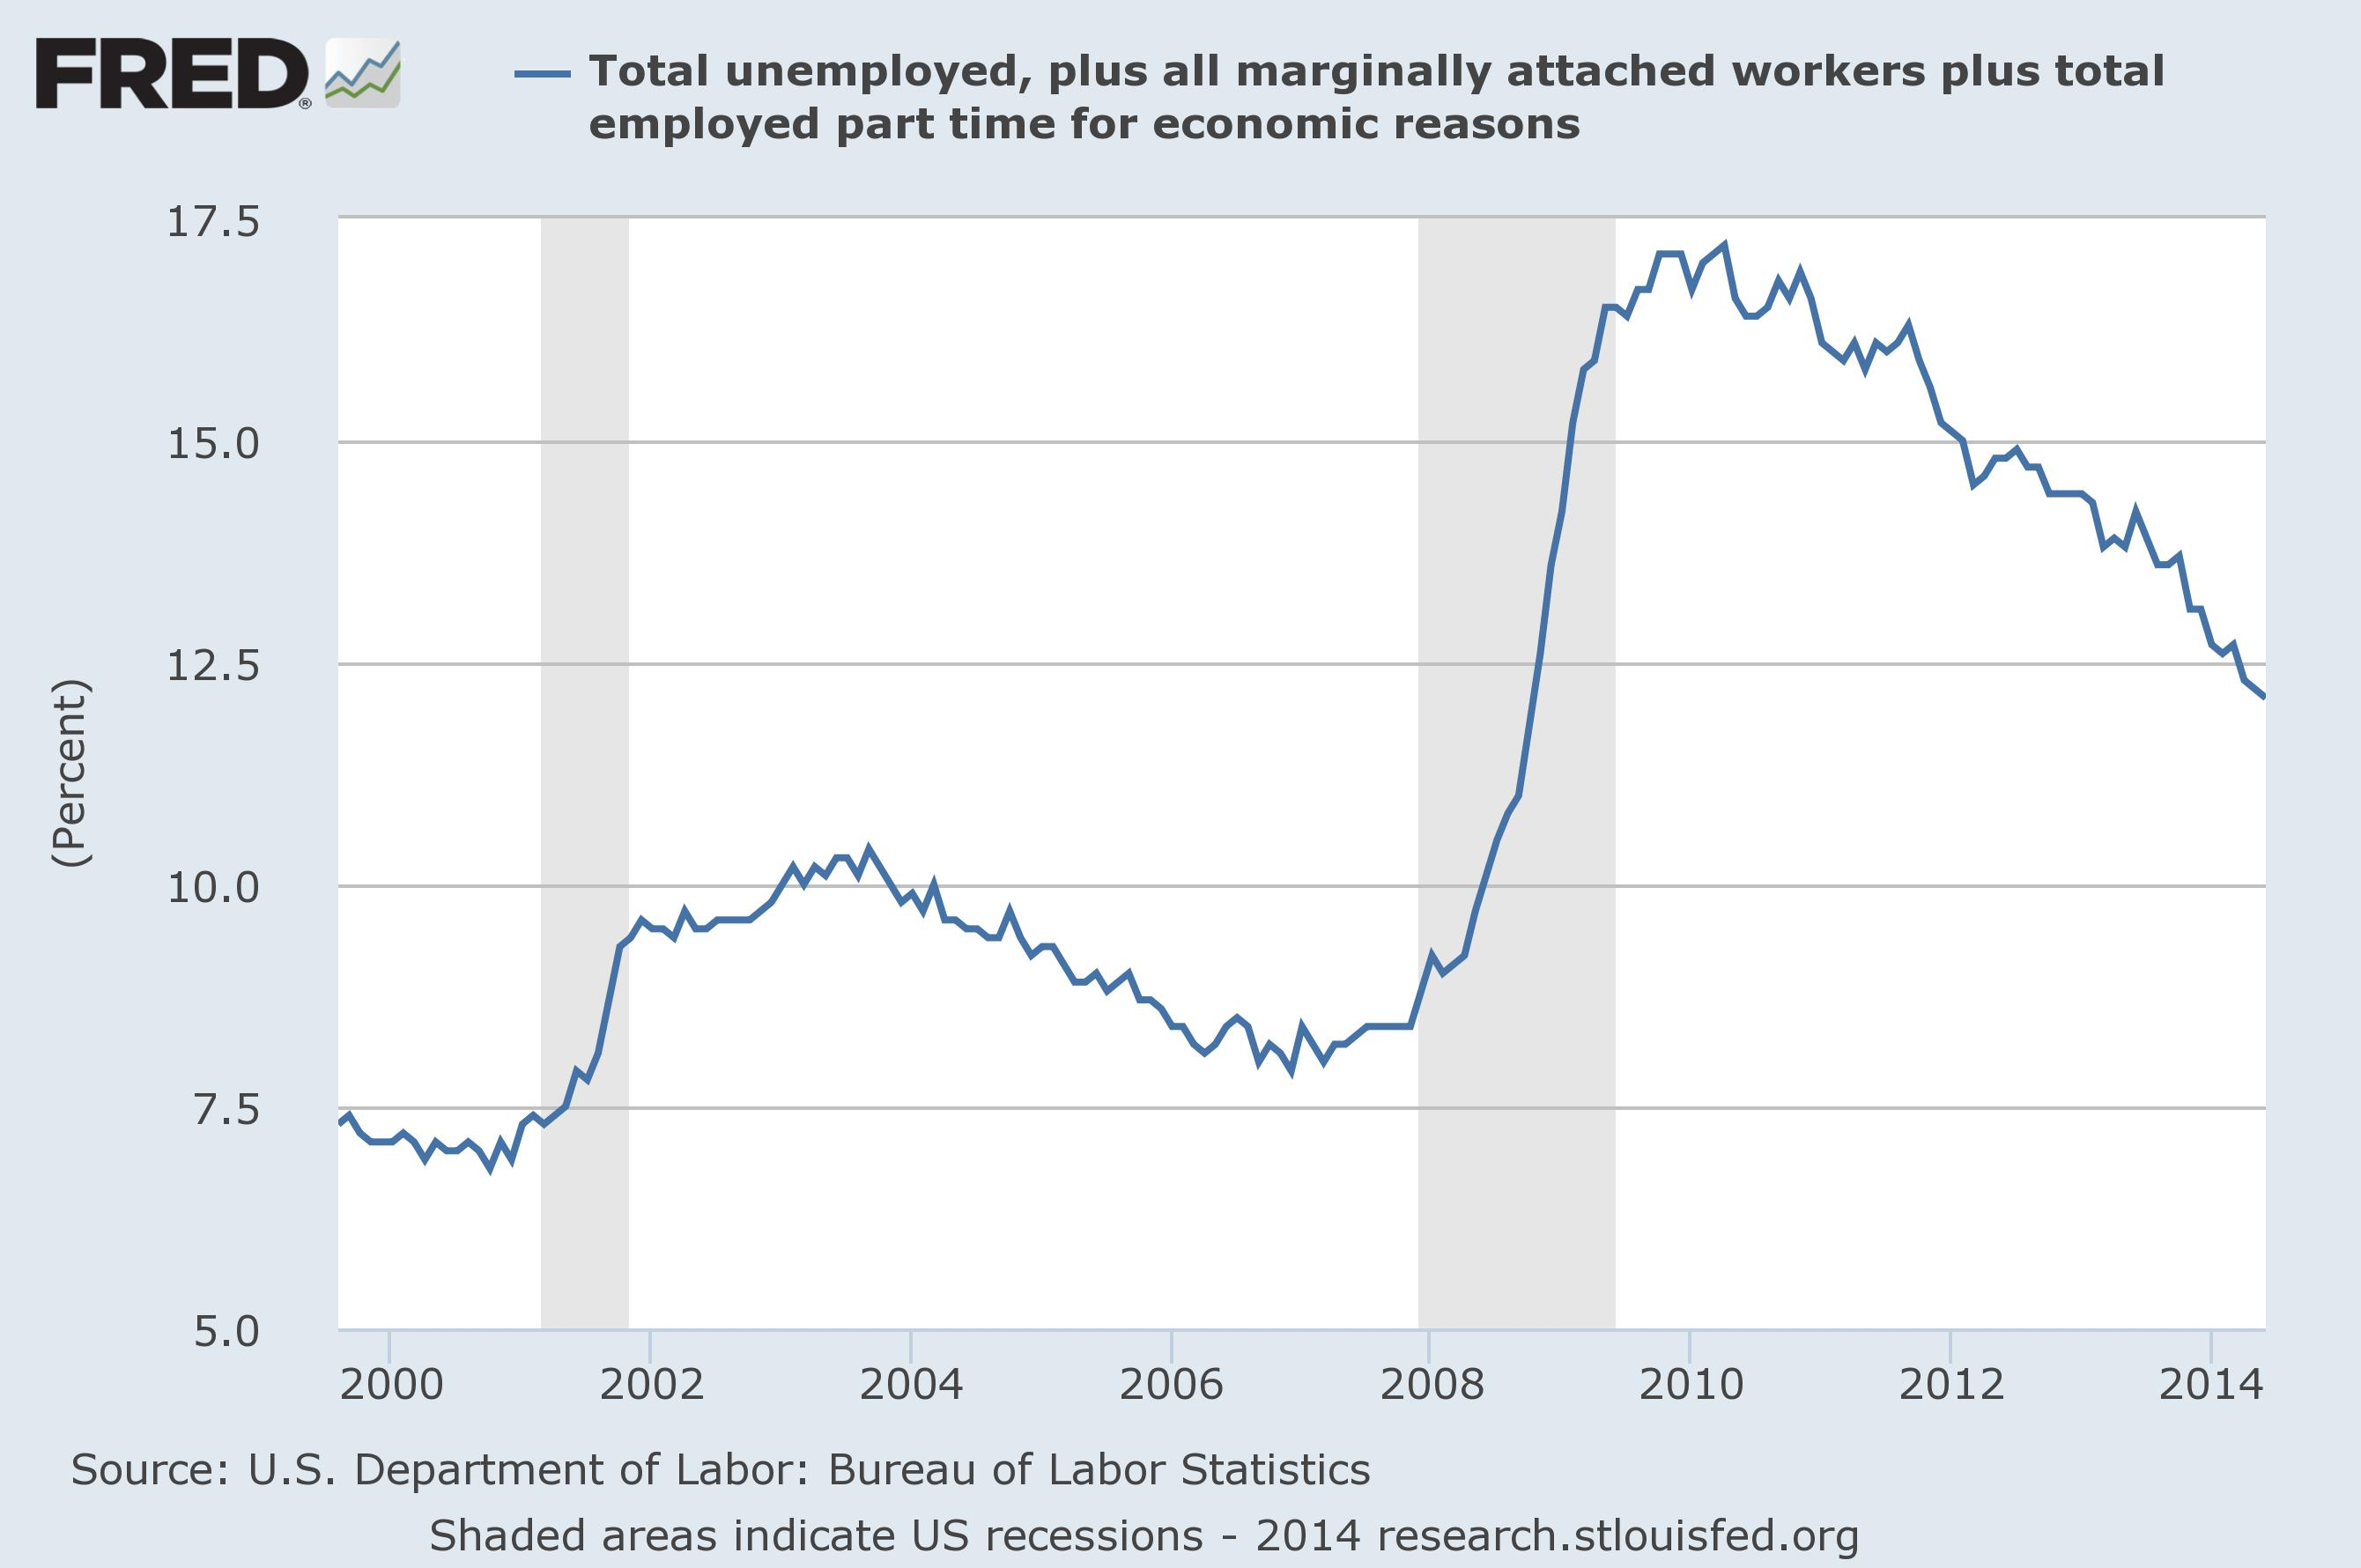 U.S. Total Unemployment Rate Worst since Great Depression